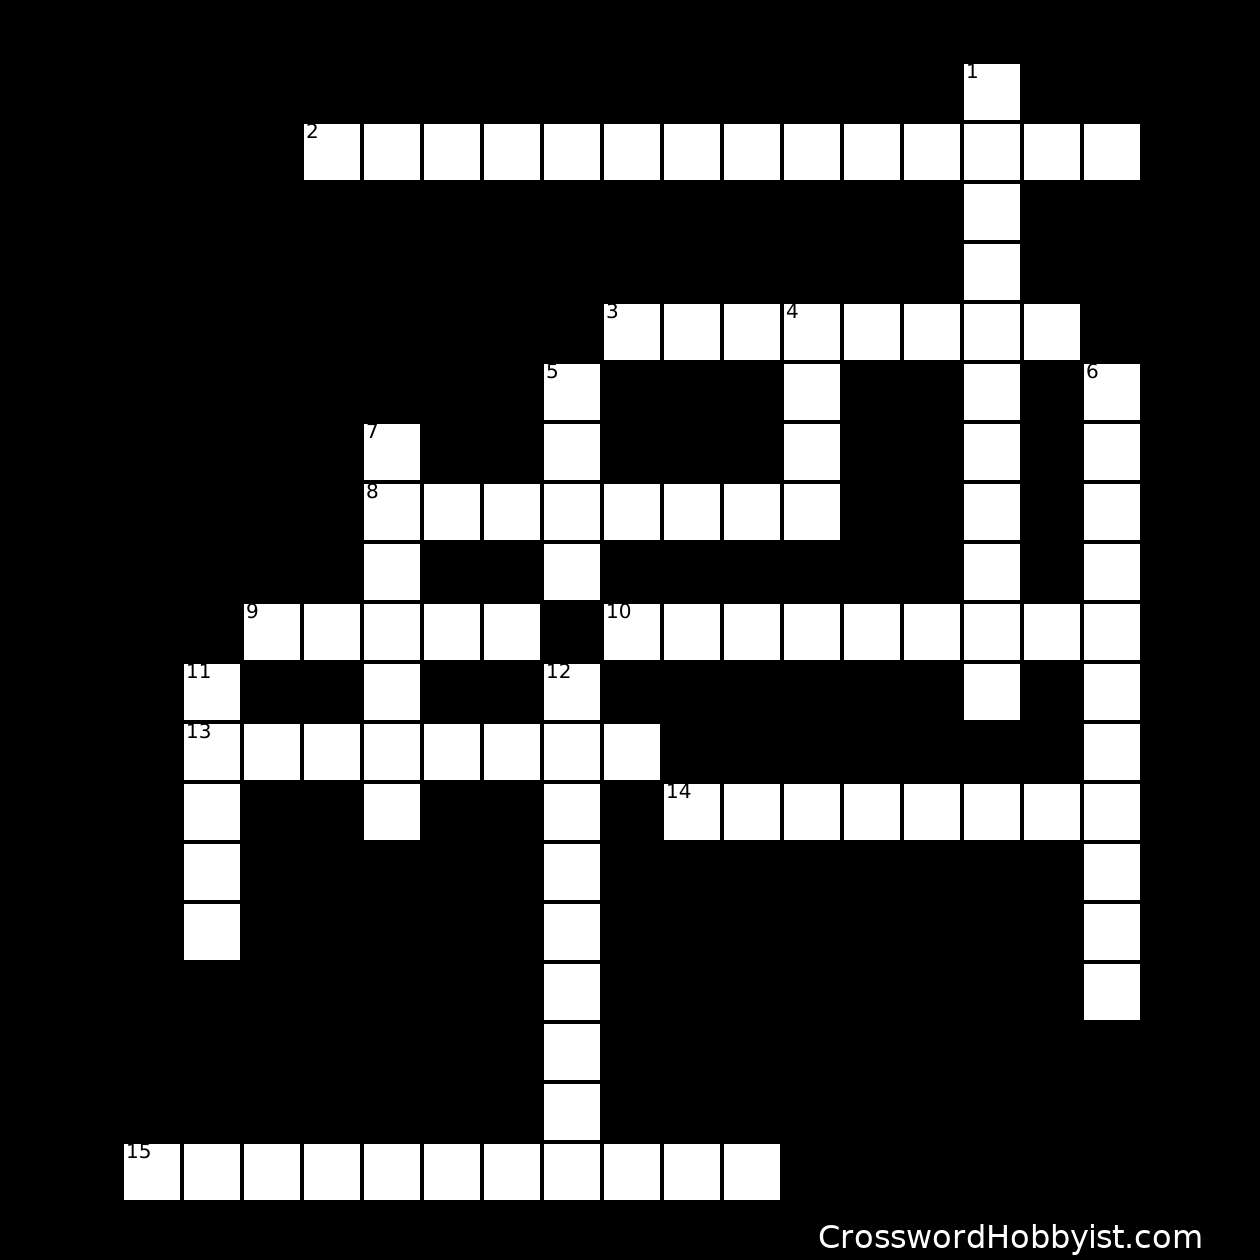 12 Step Recovery - Crossword Puzzle